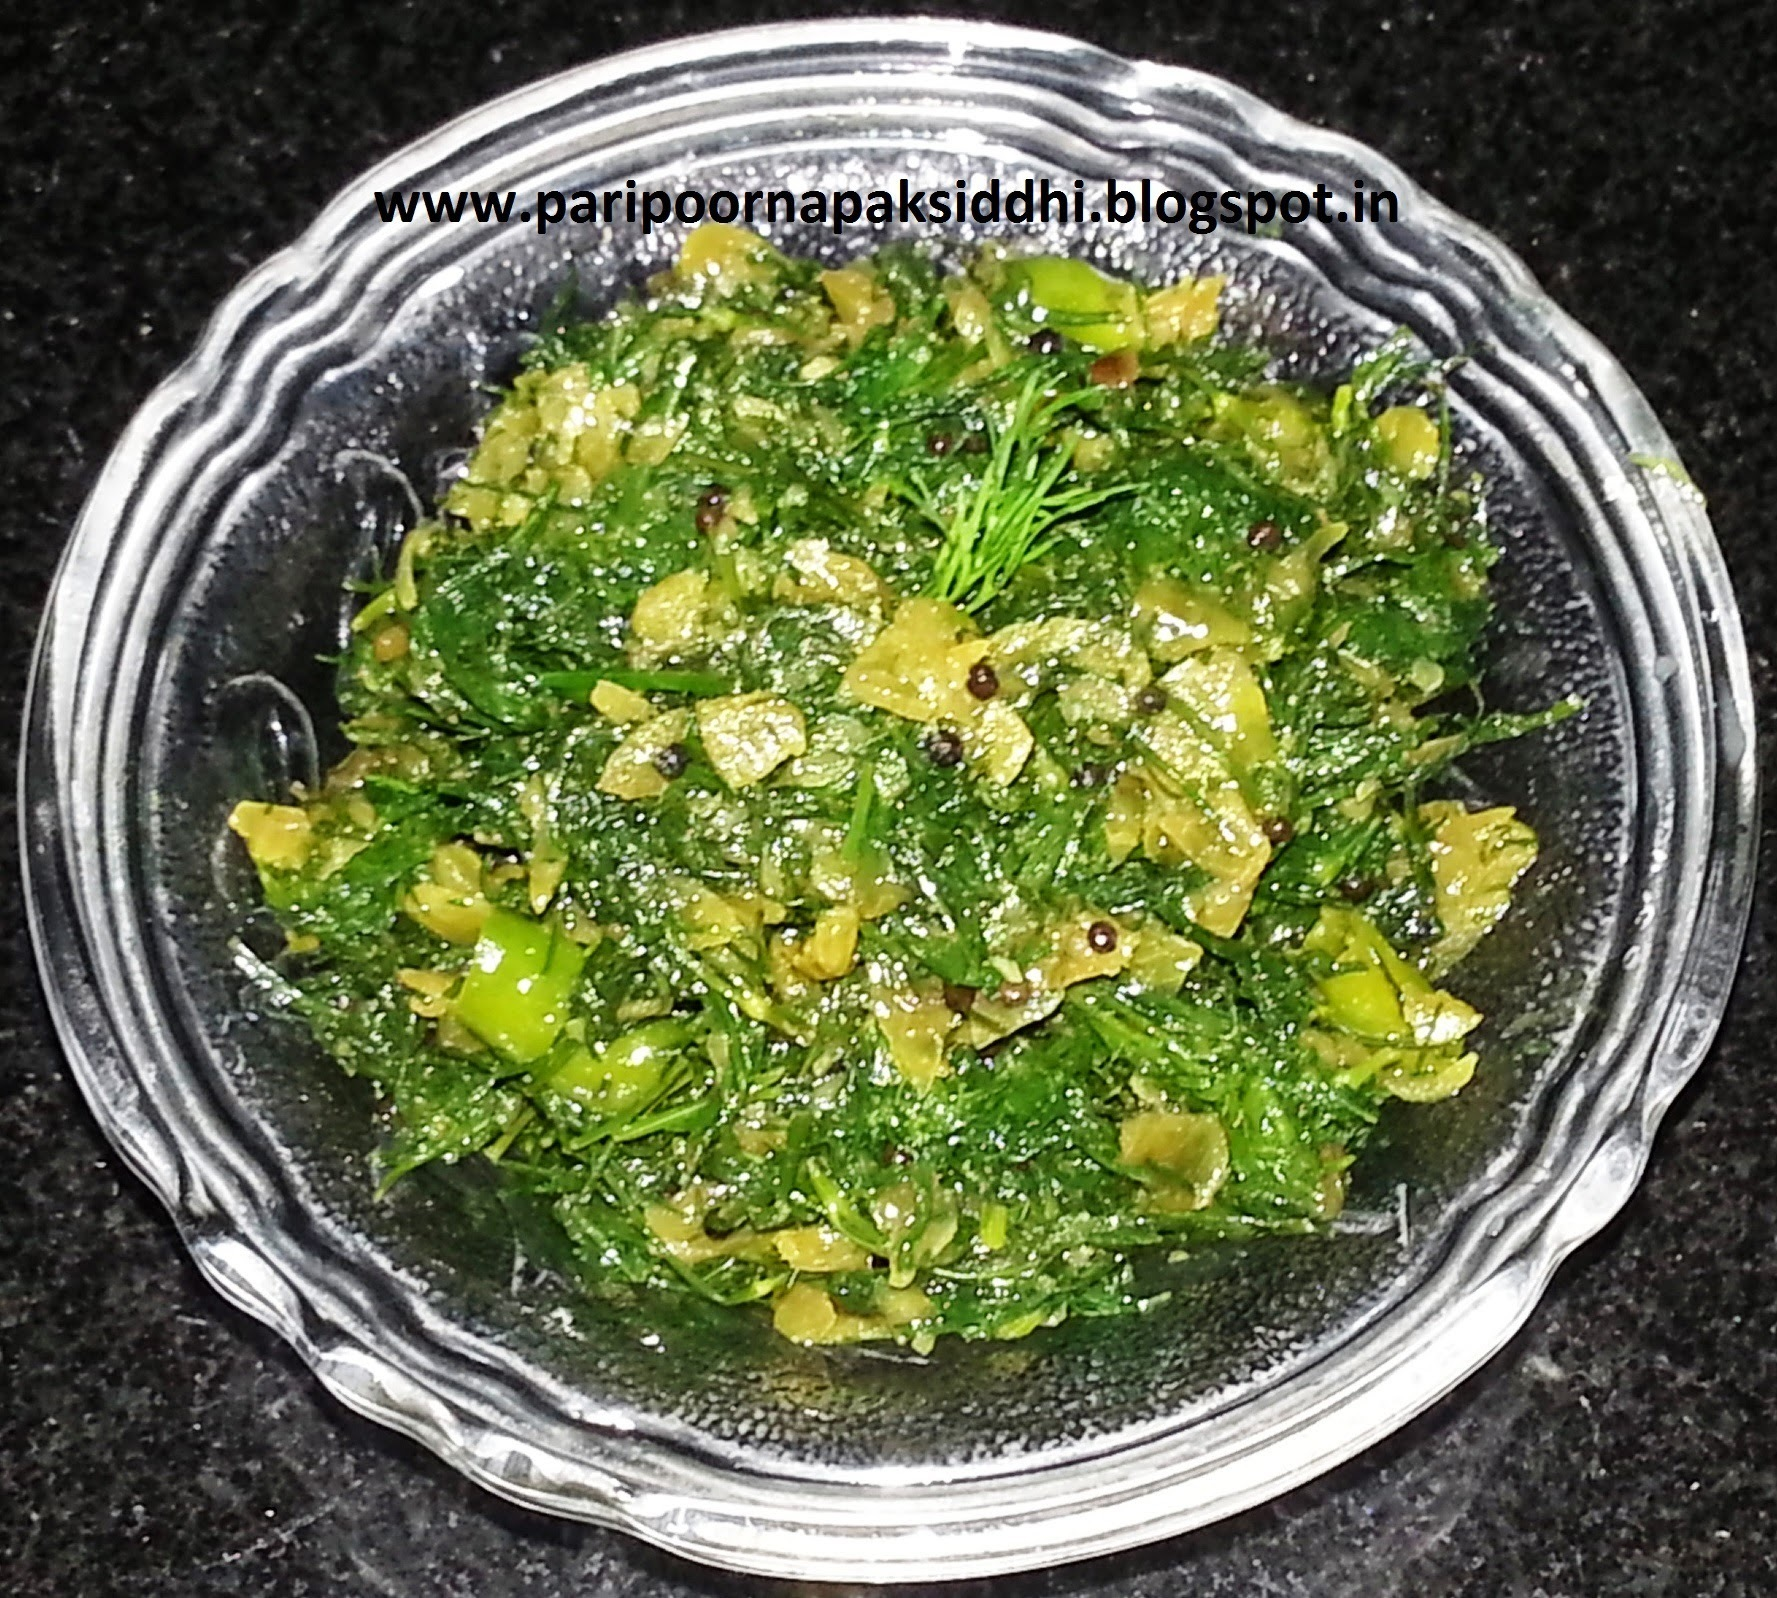 SHEPU CHI BHAJI / STIR FRIED DILL LEAVES / शेपूची भाजी